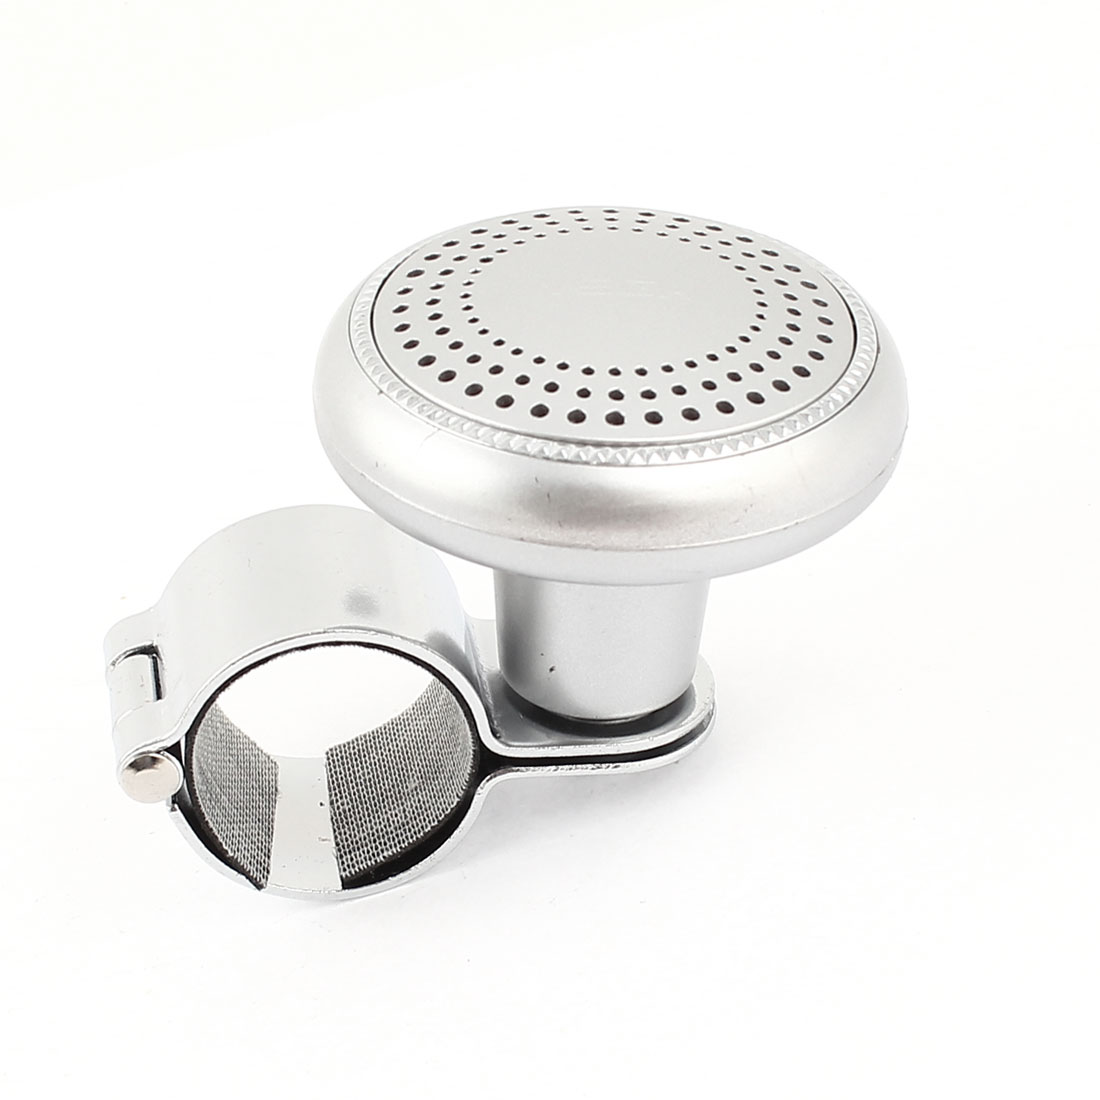 Hole Gridding Pattern Decor Silver Tone Metal Steering Wheel Spinner Knob Power Handle